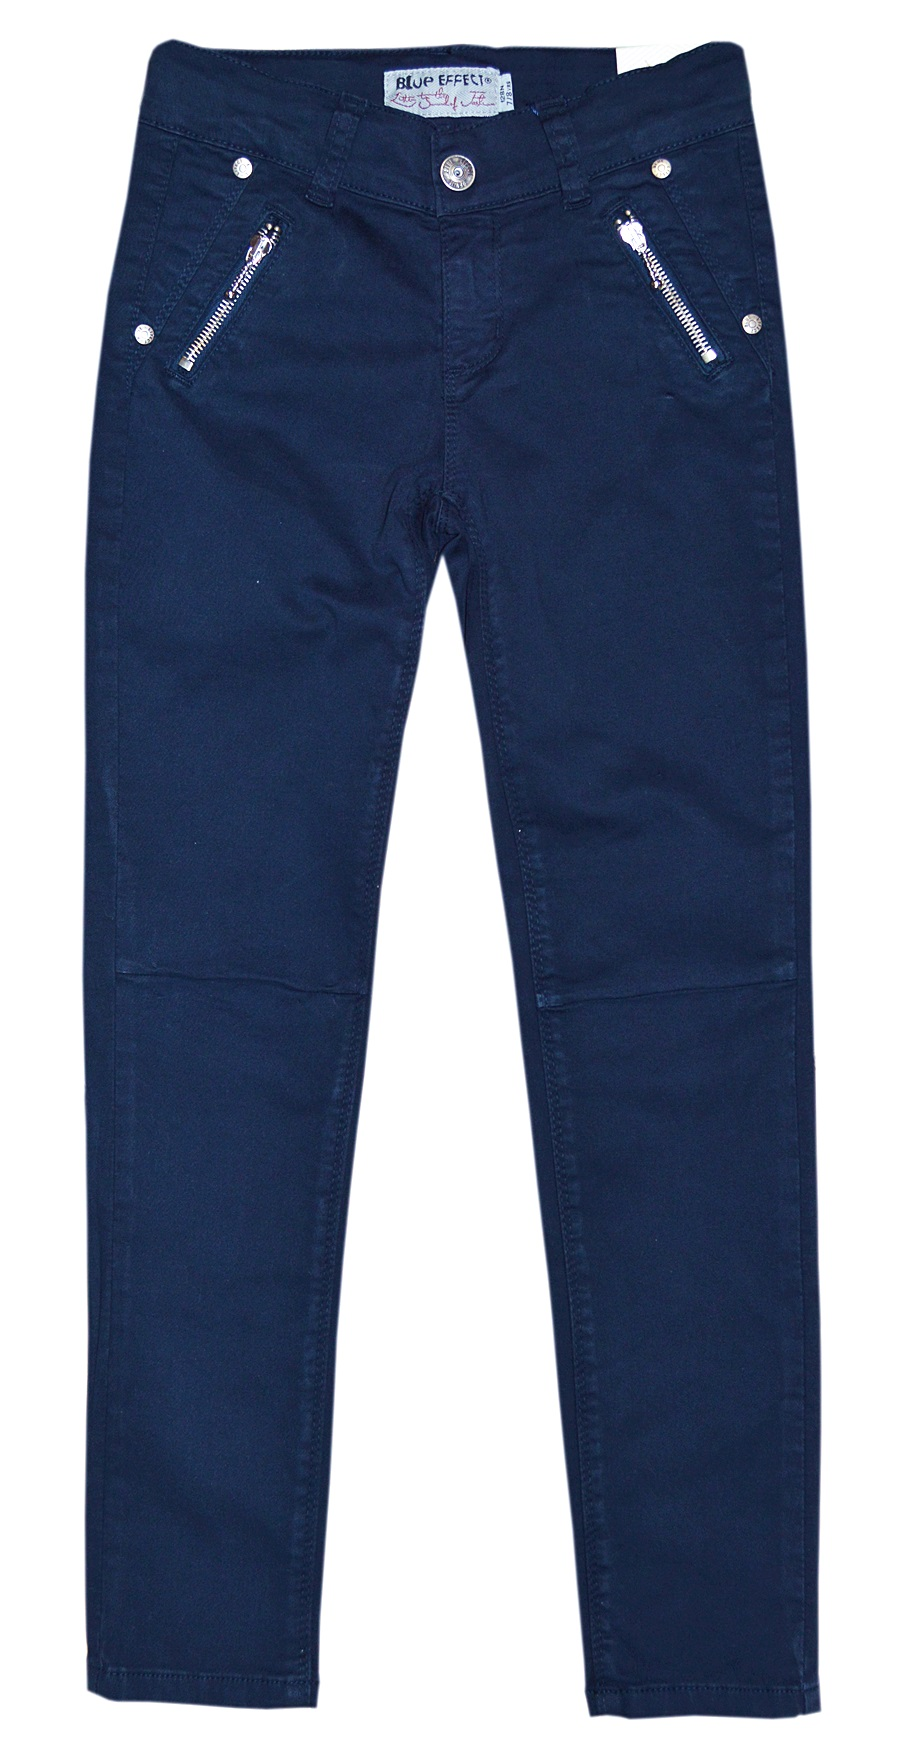 blue effect girls jeans tolle chino hose in nachtblau. Black Bedroom Furniture Sets. Home Design Ideas